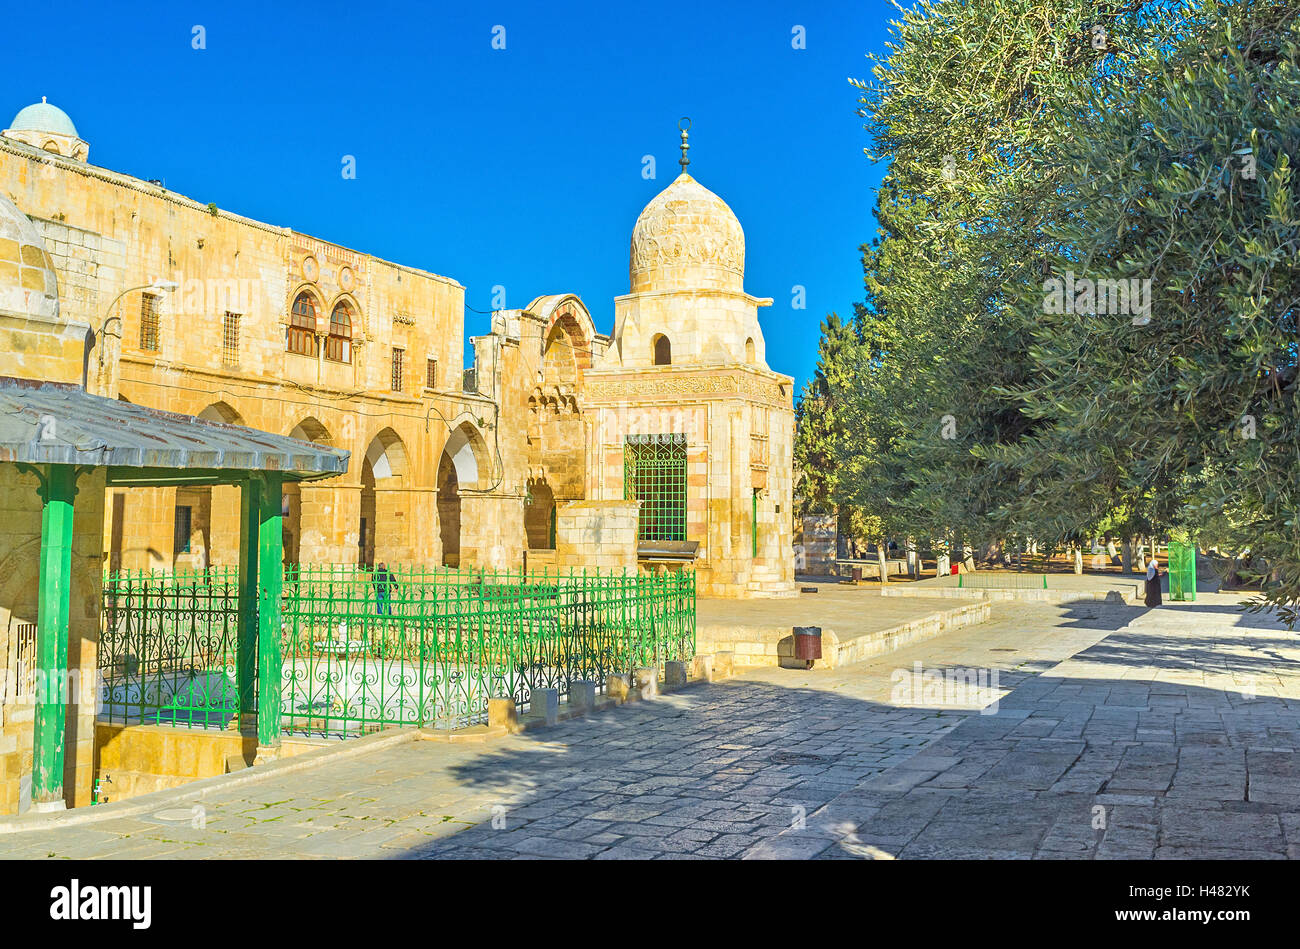 The Sabil Qaitbaywith the medieval arcades and gates of Mamluk period on the background, Temple Mount, Jerusalem, Stock Photo